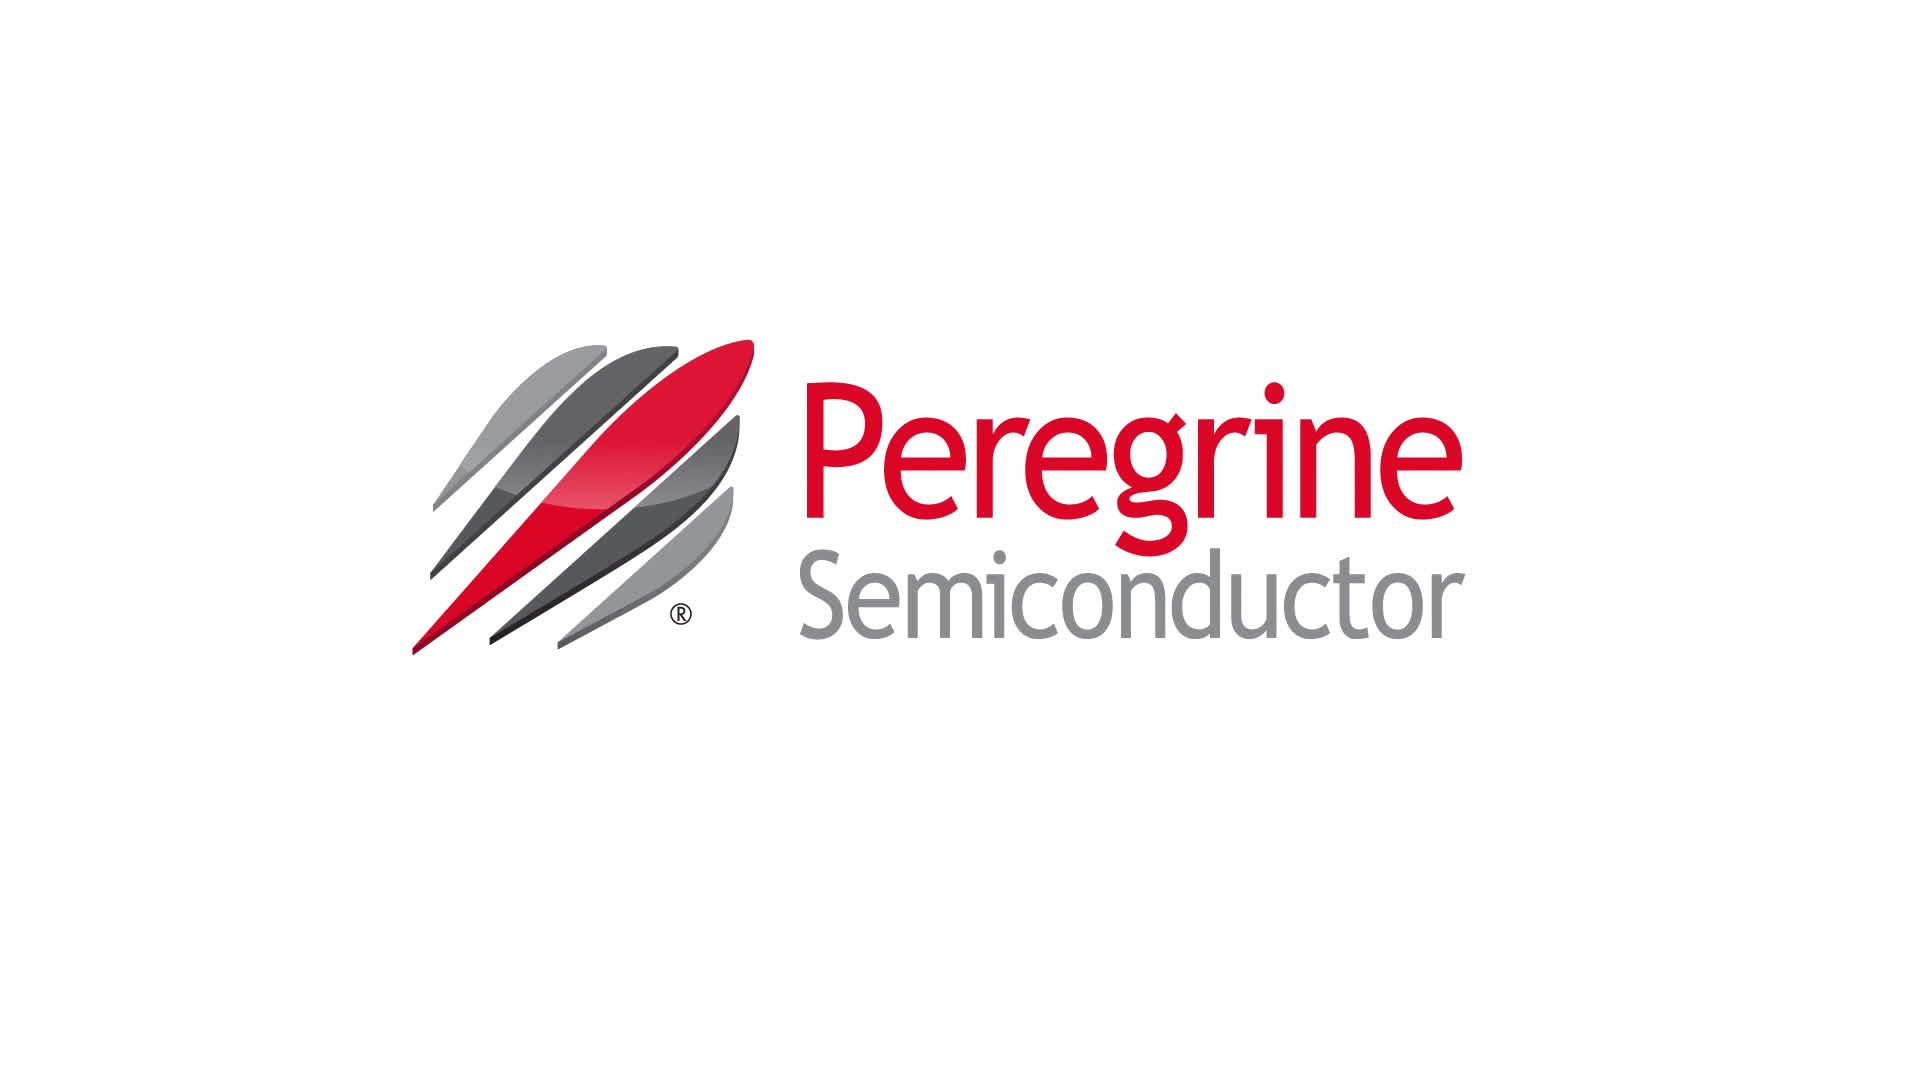 Peregrine Semiconductor introduces the first high frequency RF SOI mixer, the UltraCMOS(R) PE41901 image reject mixer.